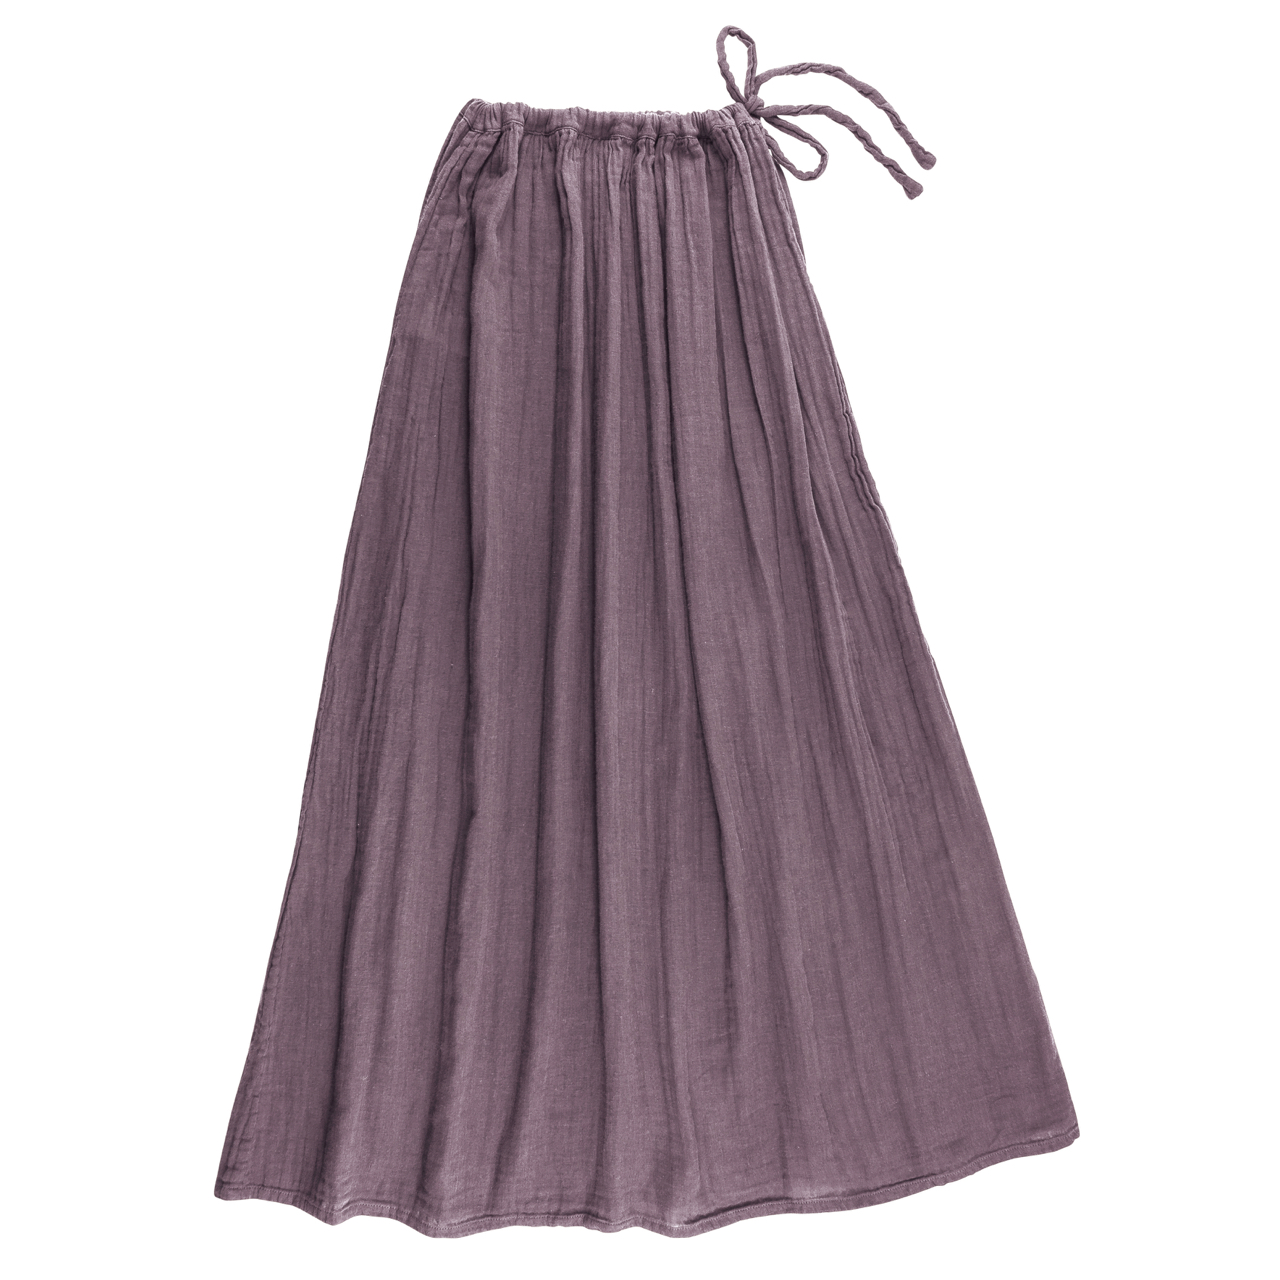 Numero 74 Ava Mum Long Skirt Dusty Lilac